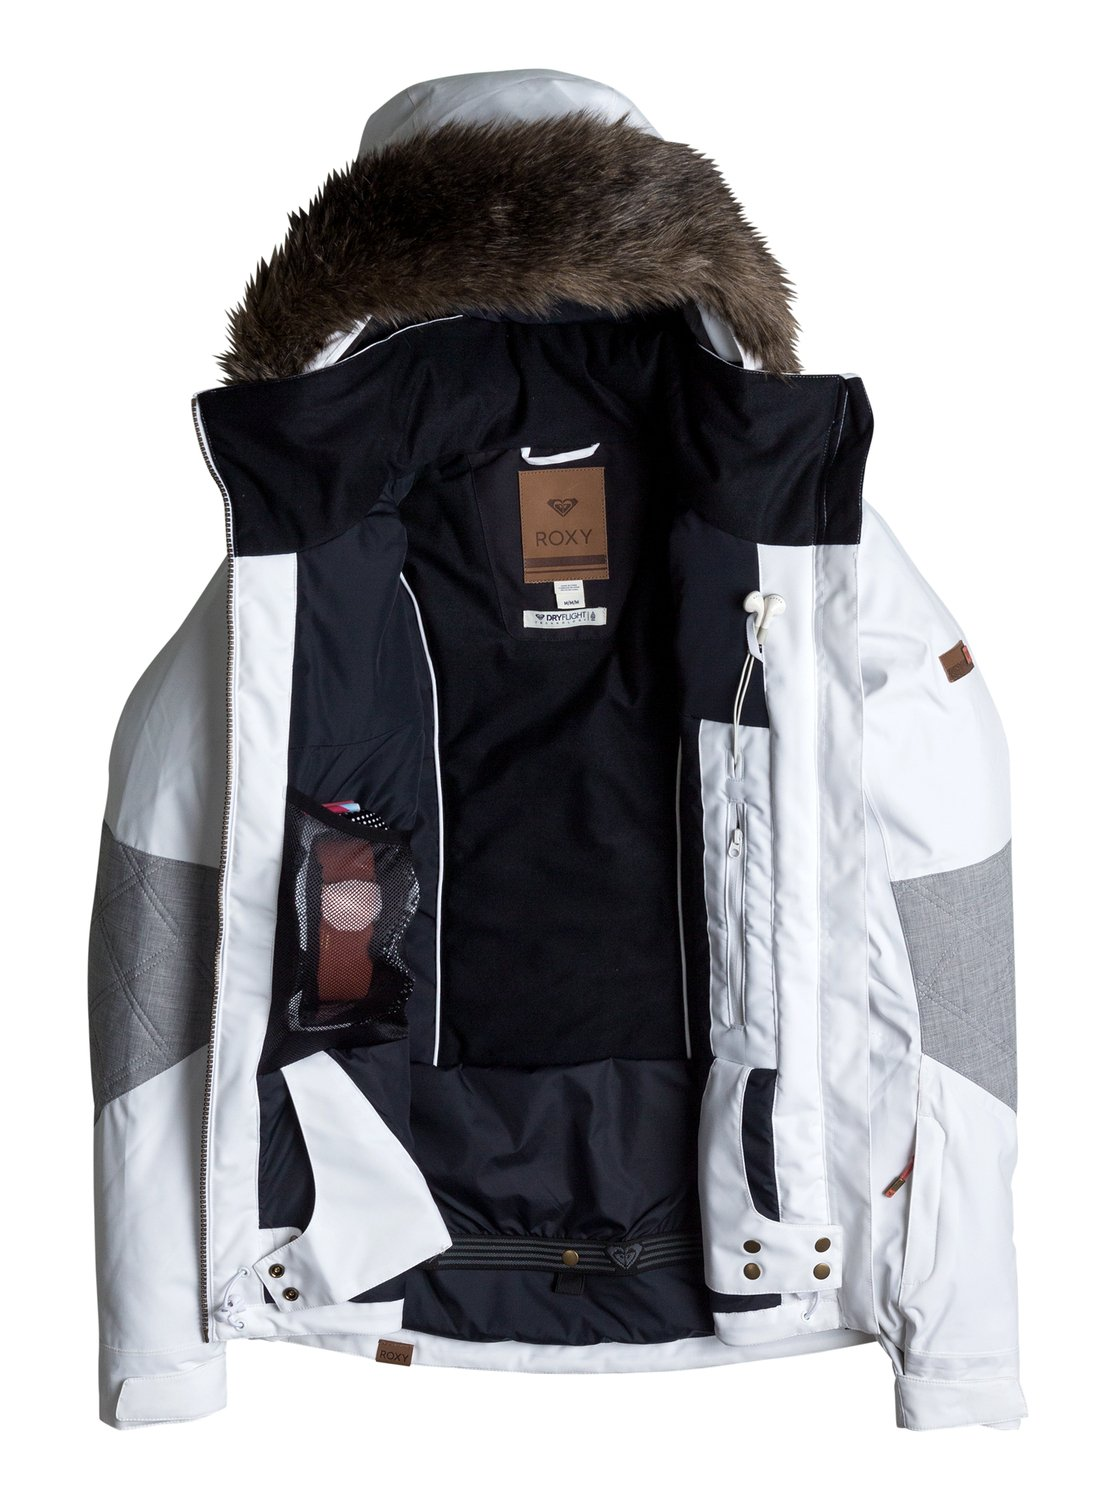 6909e123932 2 Atmosphere - Snow Jacket ERJTJ03044 Roxy